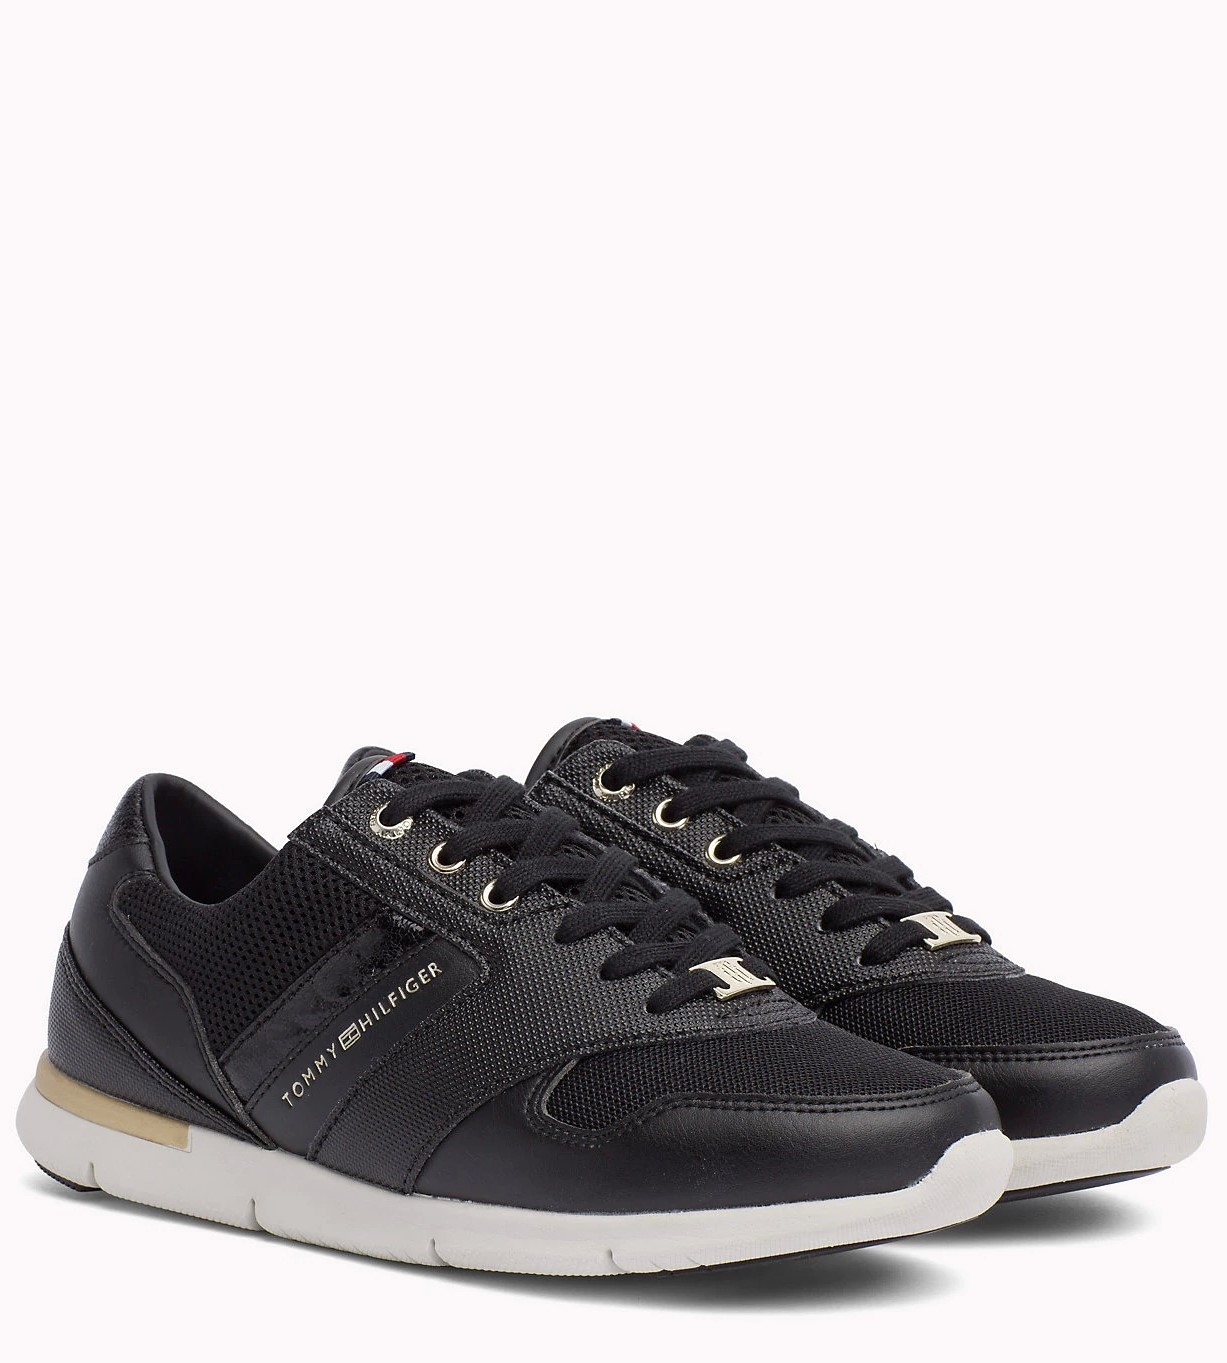 Tommy Hilfiger tenisi negri Light Weight Breathable Sneaker Black ... aa952f1b25